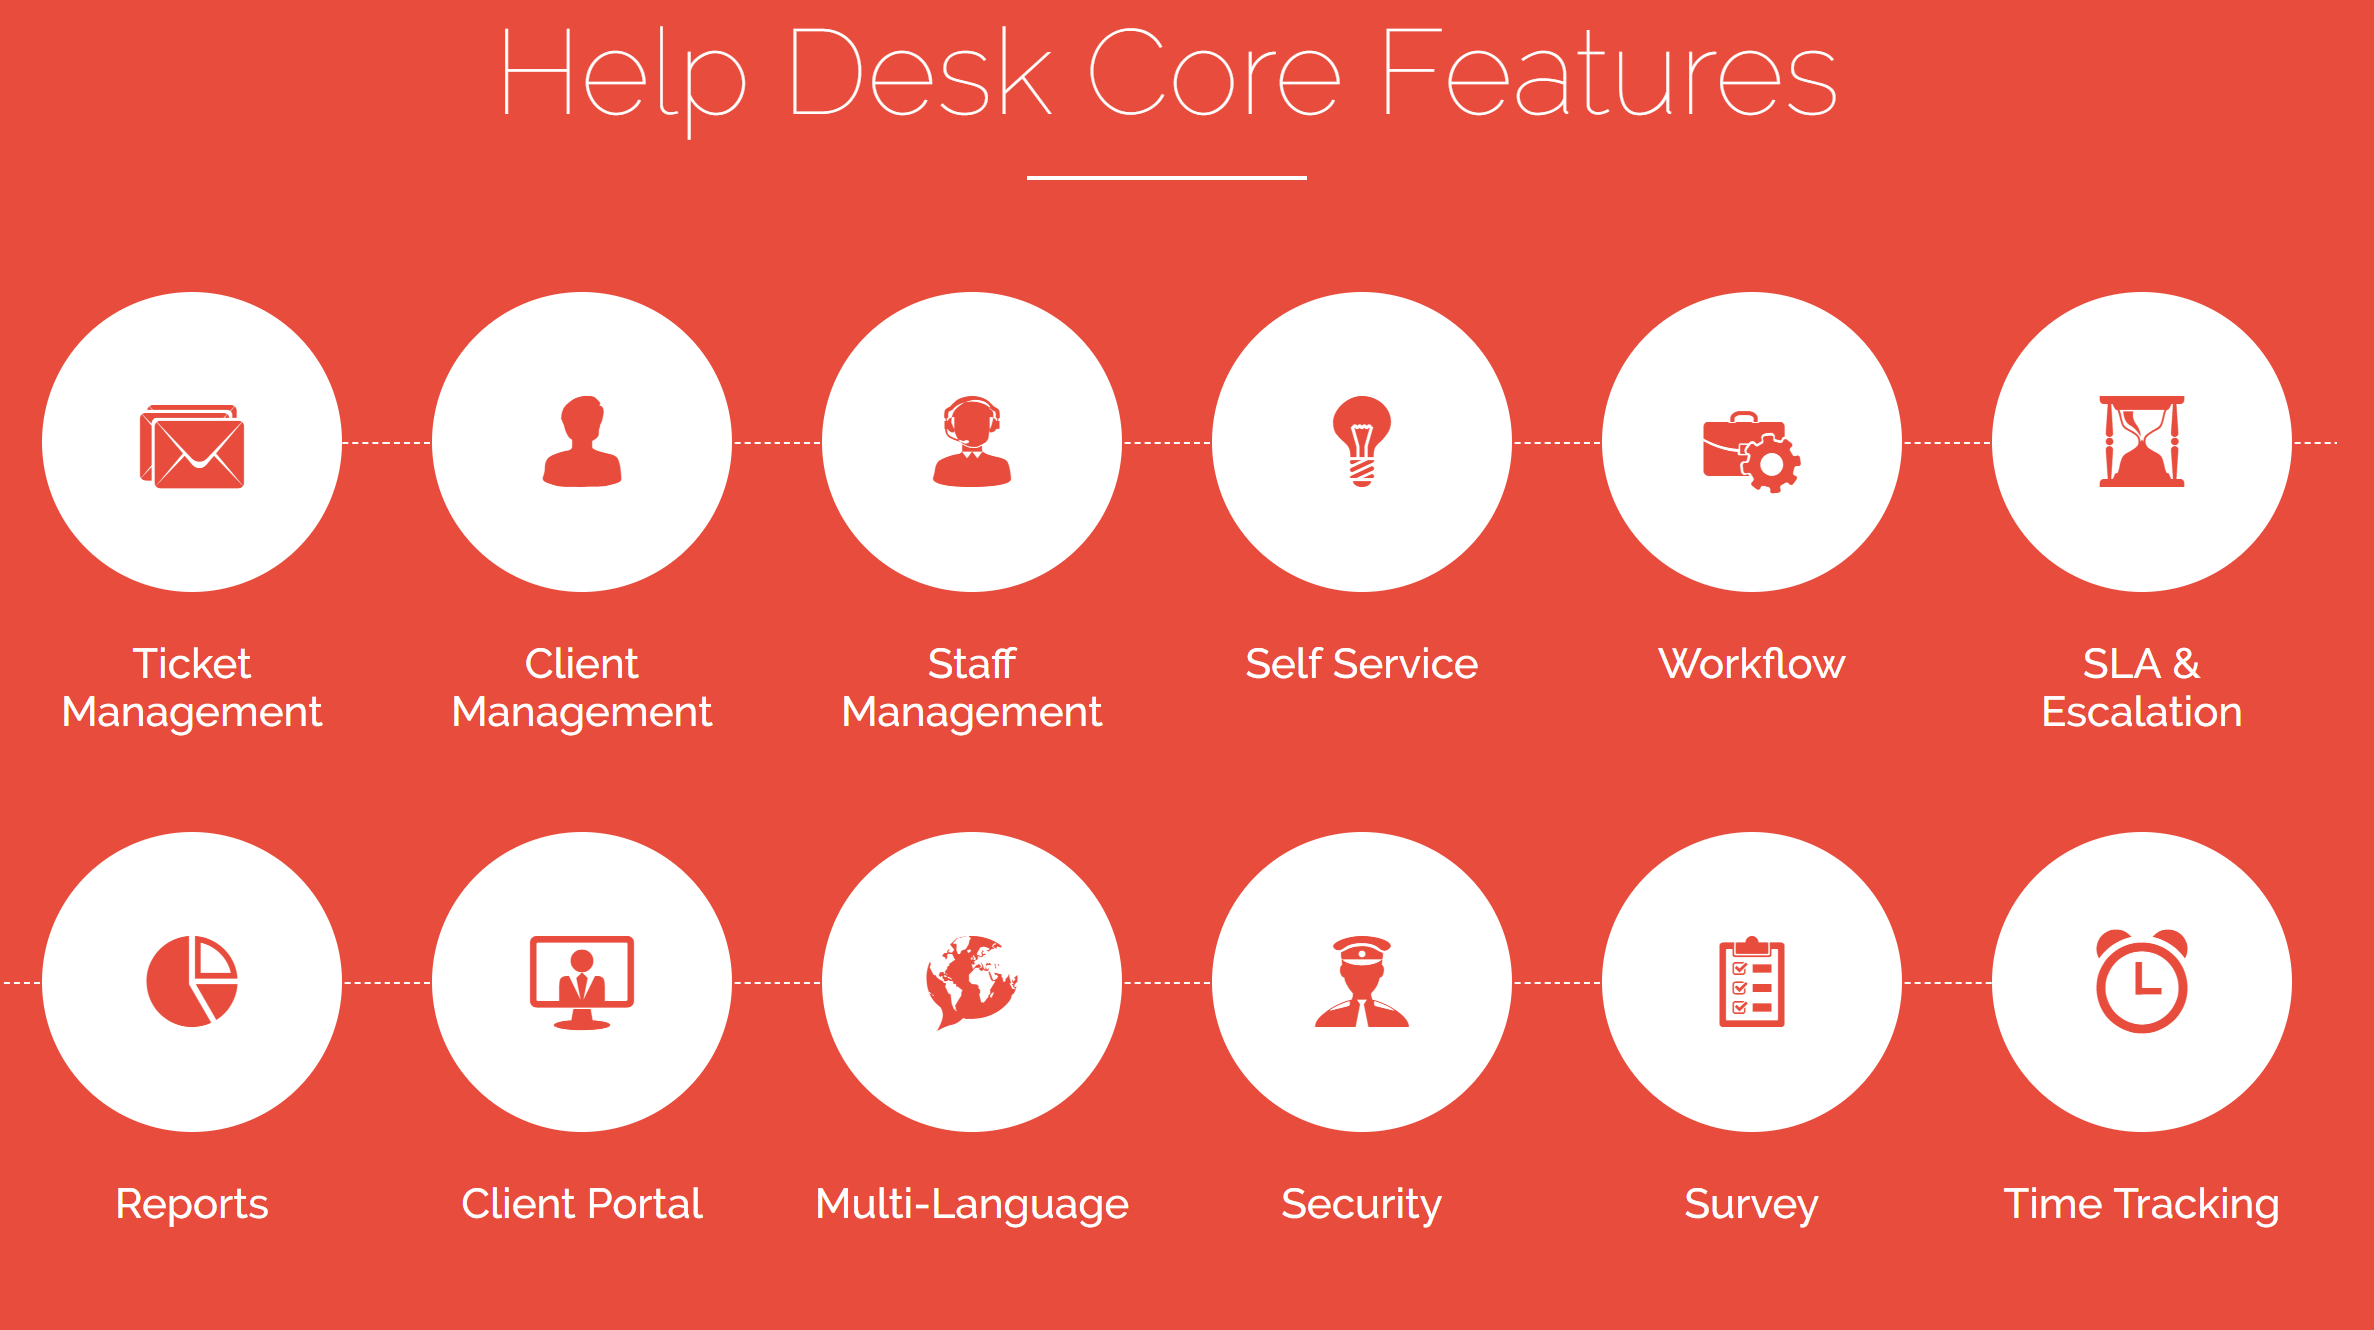 Vision Helpdesk Software Review features